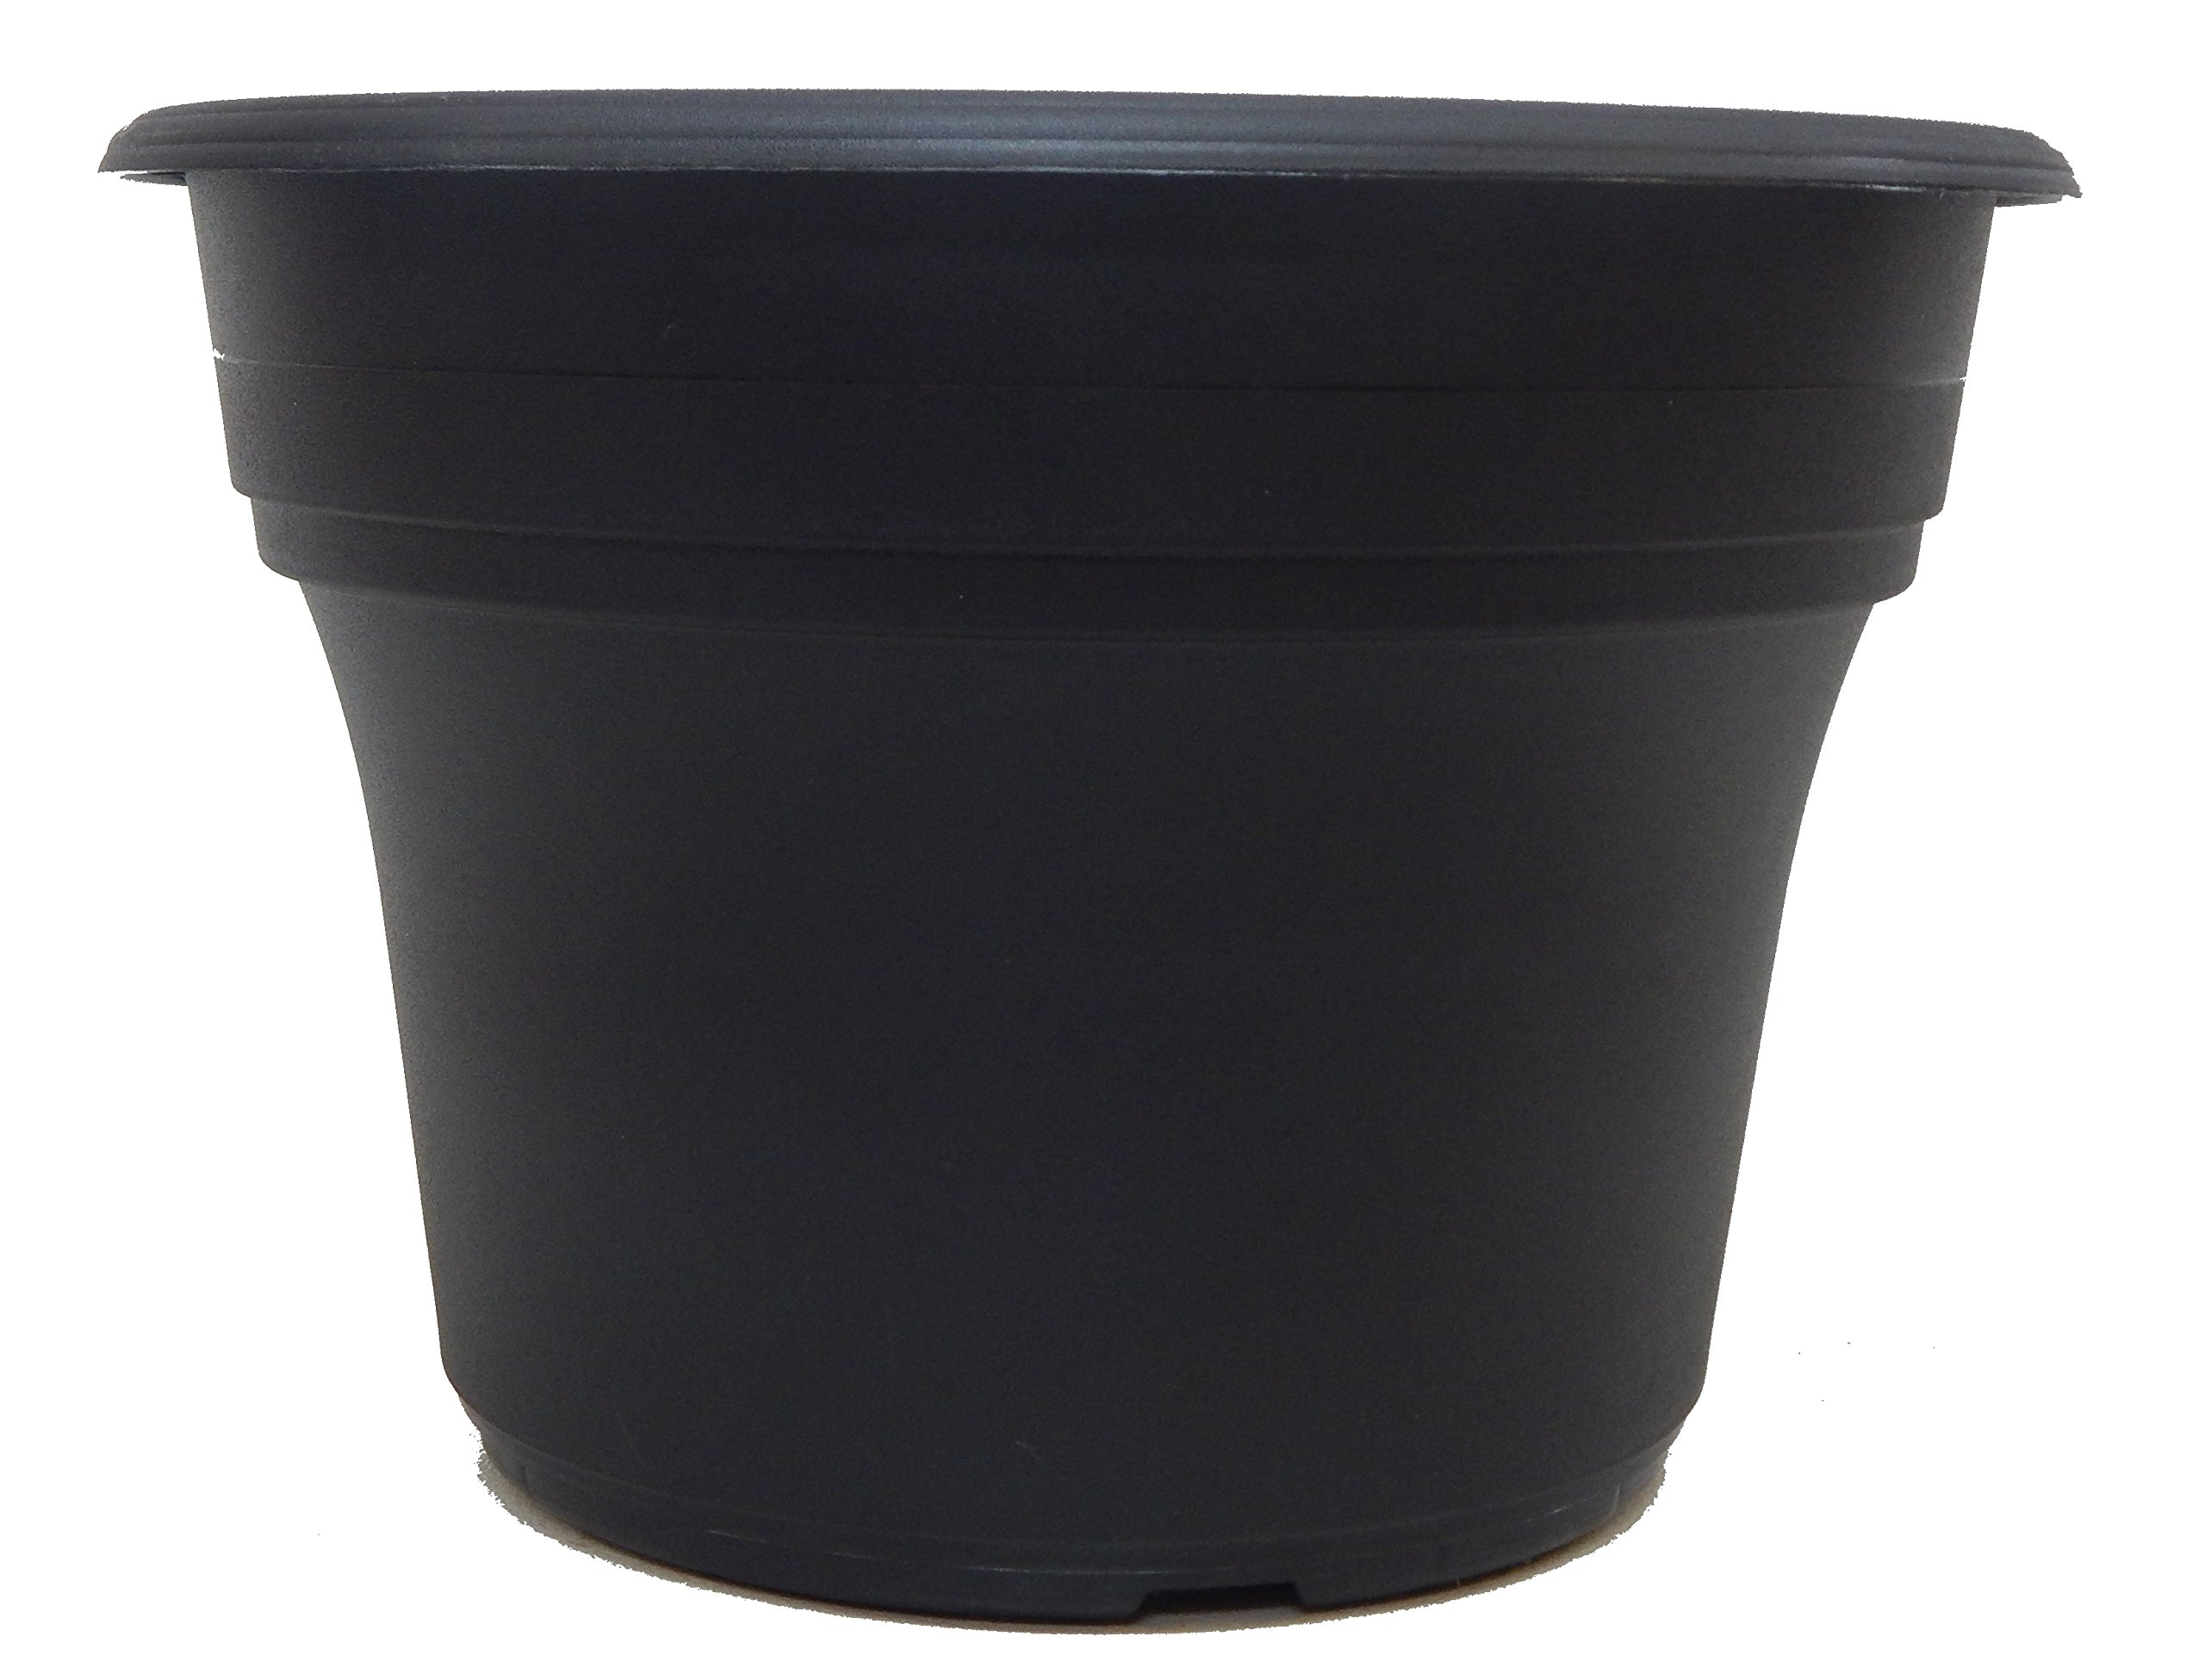 DILLEN 3 New 10 Inch Round plastic Decorative Fancy Planter, Great Pot For Home Or Patio Garden,Color Black